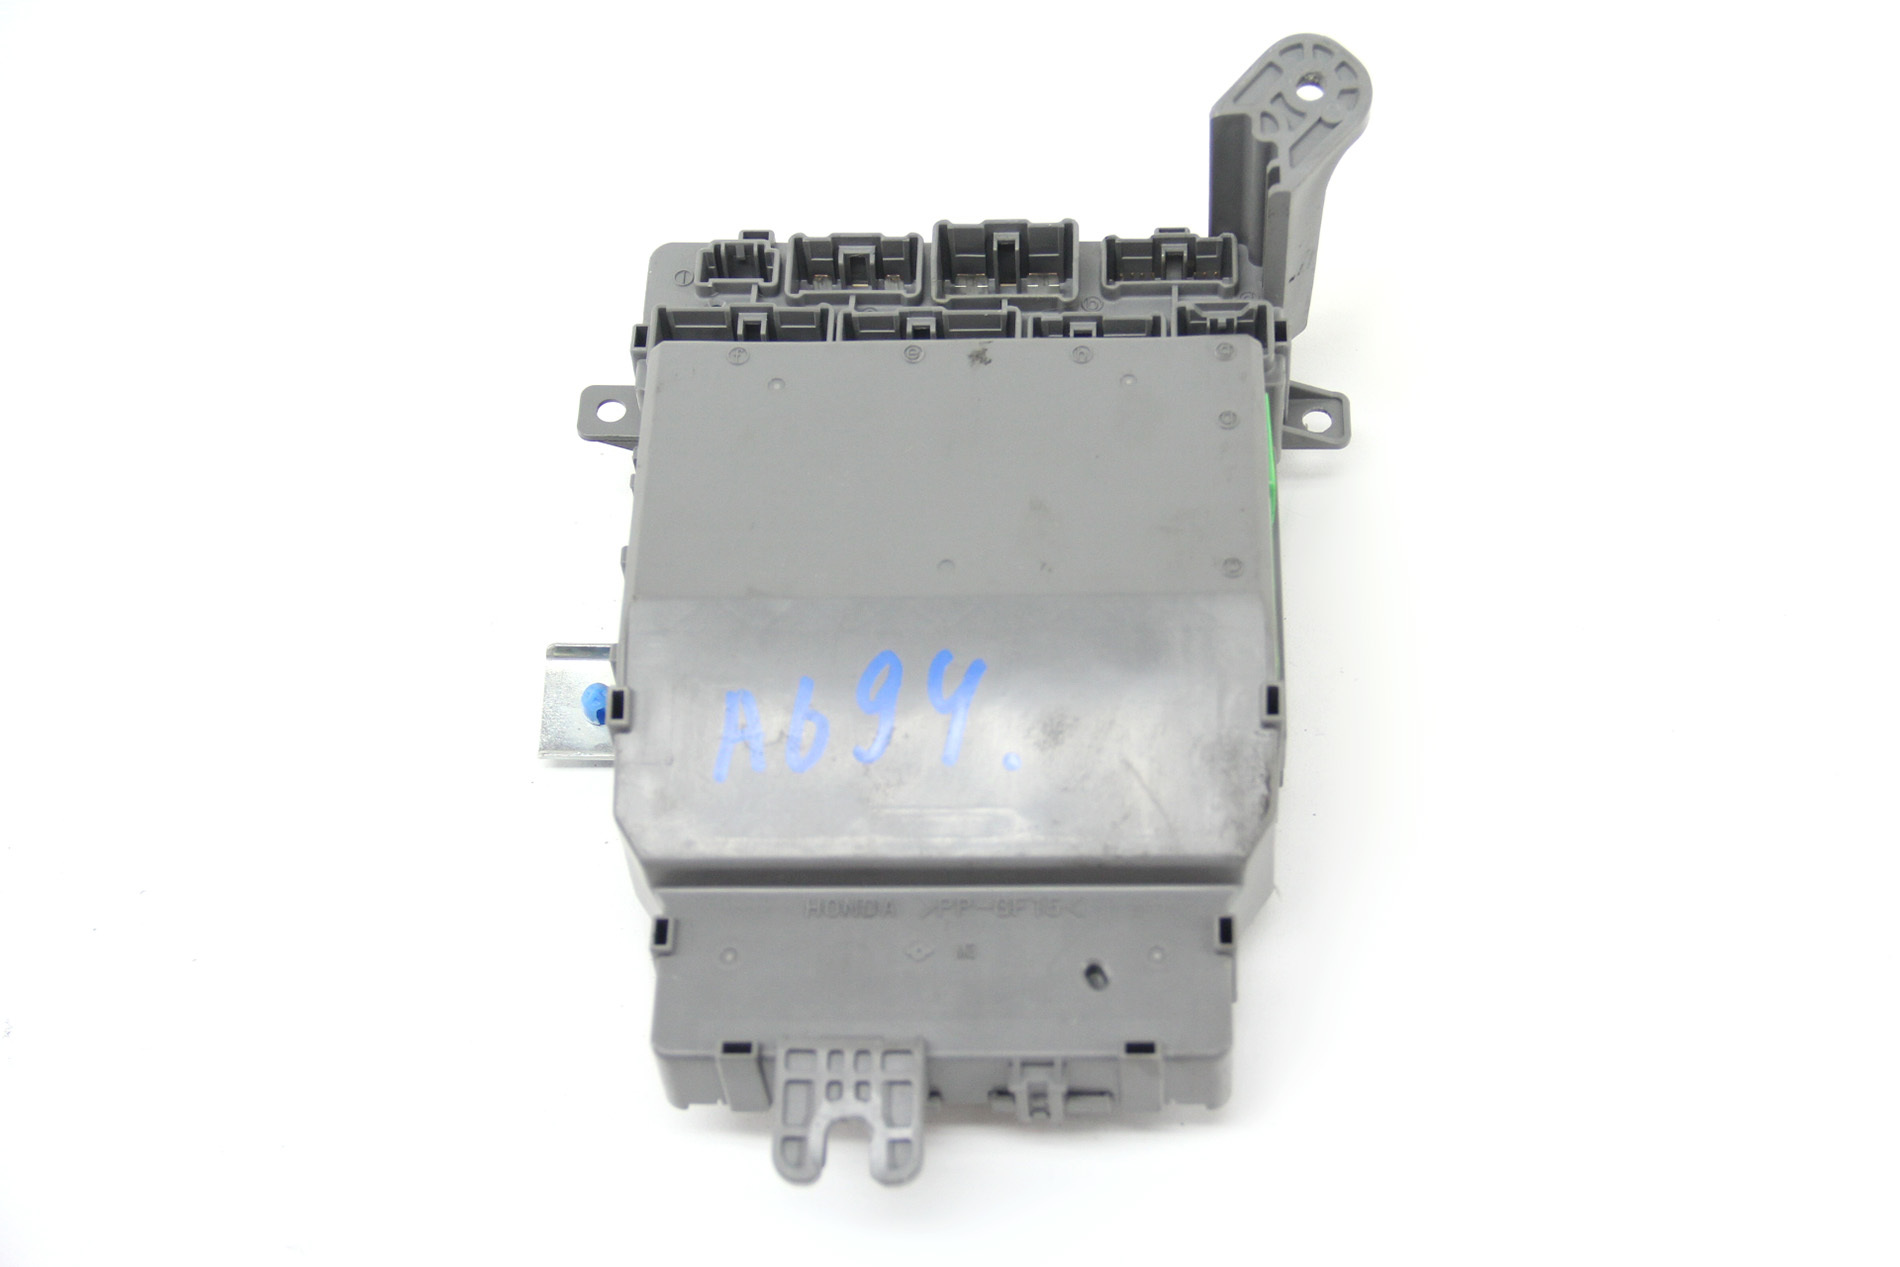 hight resolution of acura tsx 07 fuse box interior under dash control relay 38200 sec a05 extreme auto parts